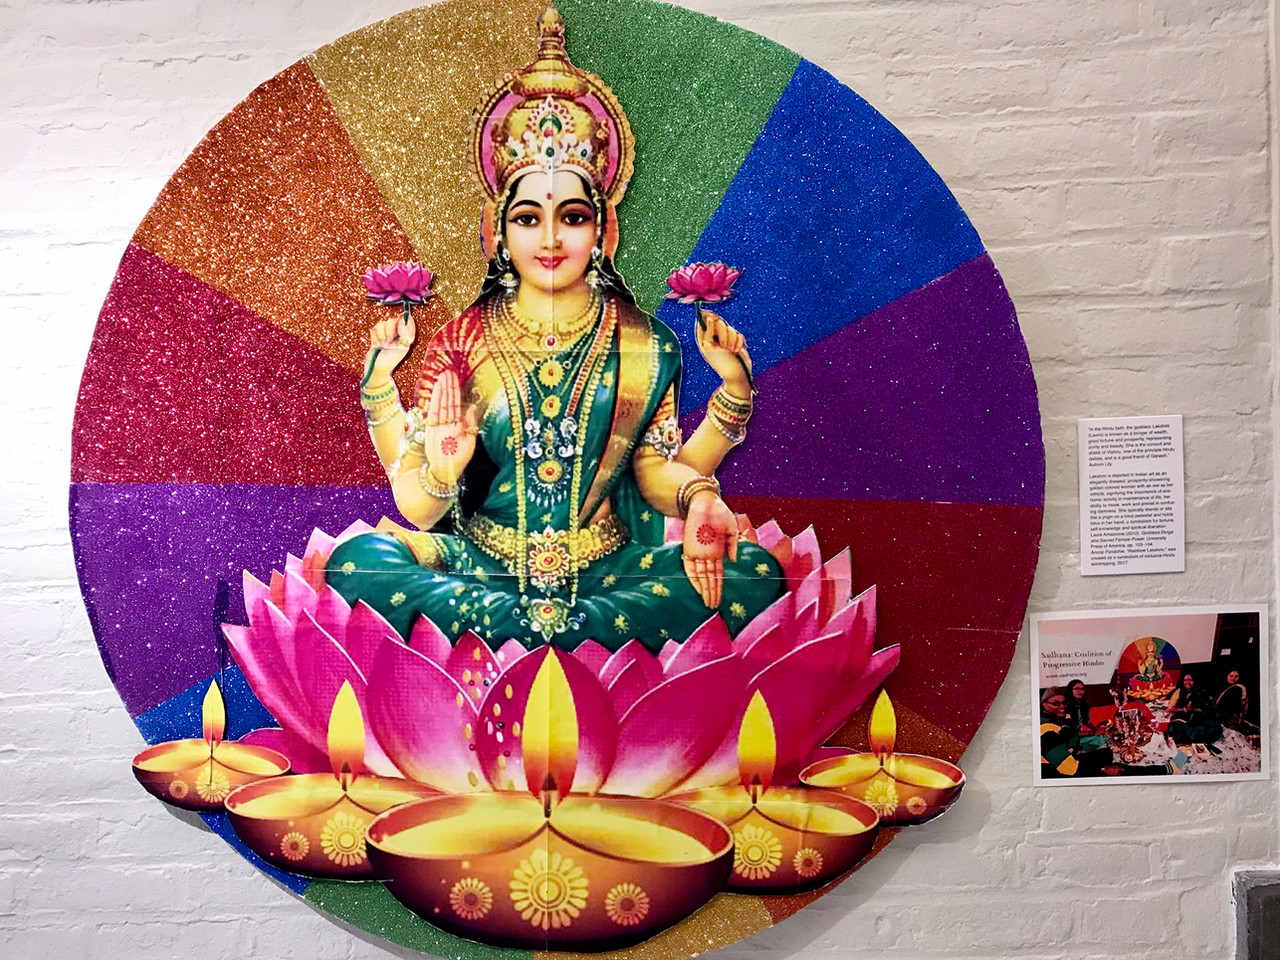 Installation View (Rainbow Lakshmi)